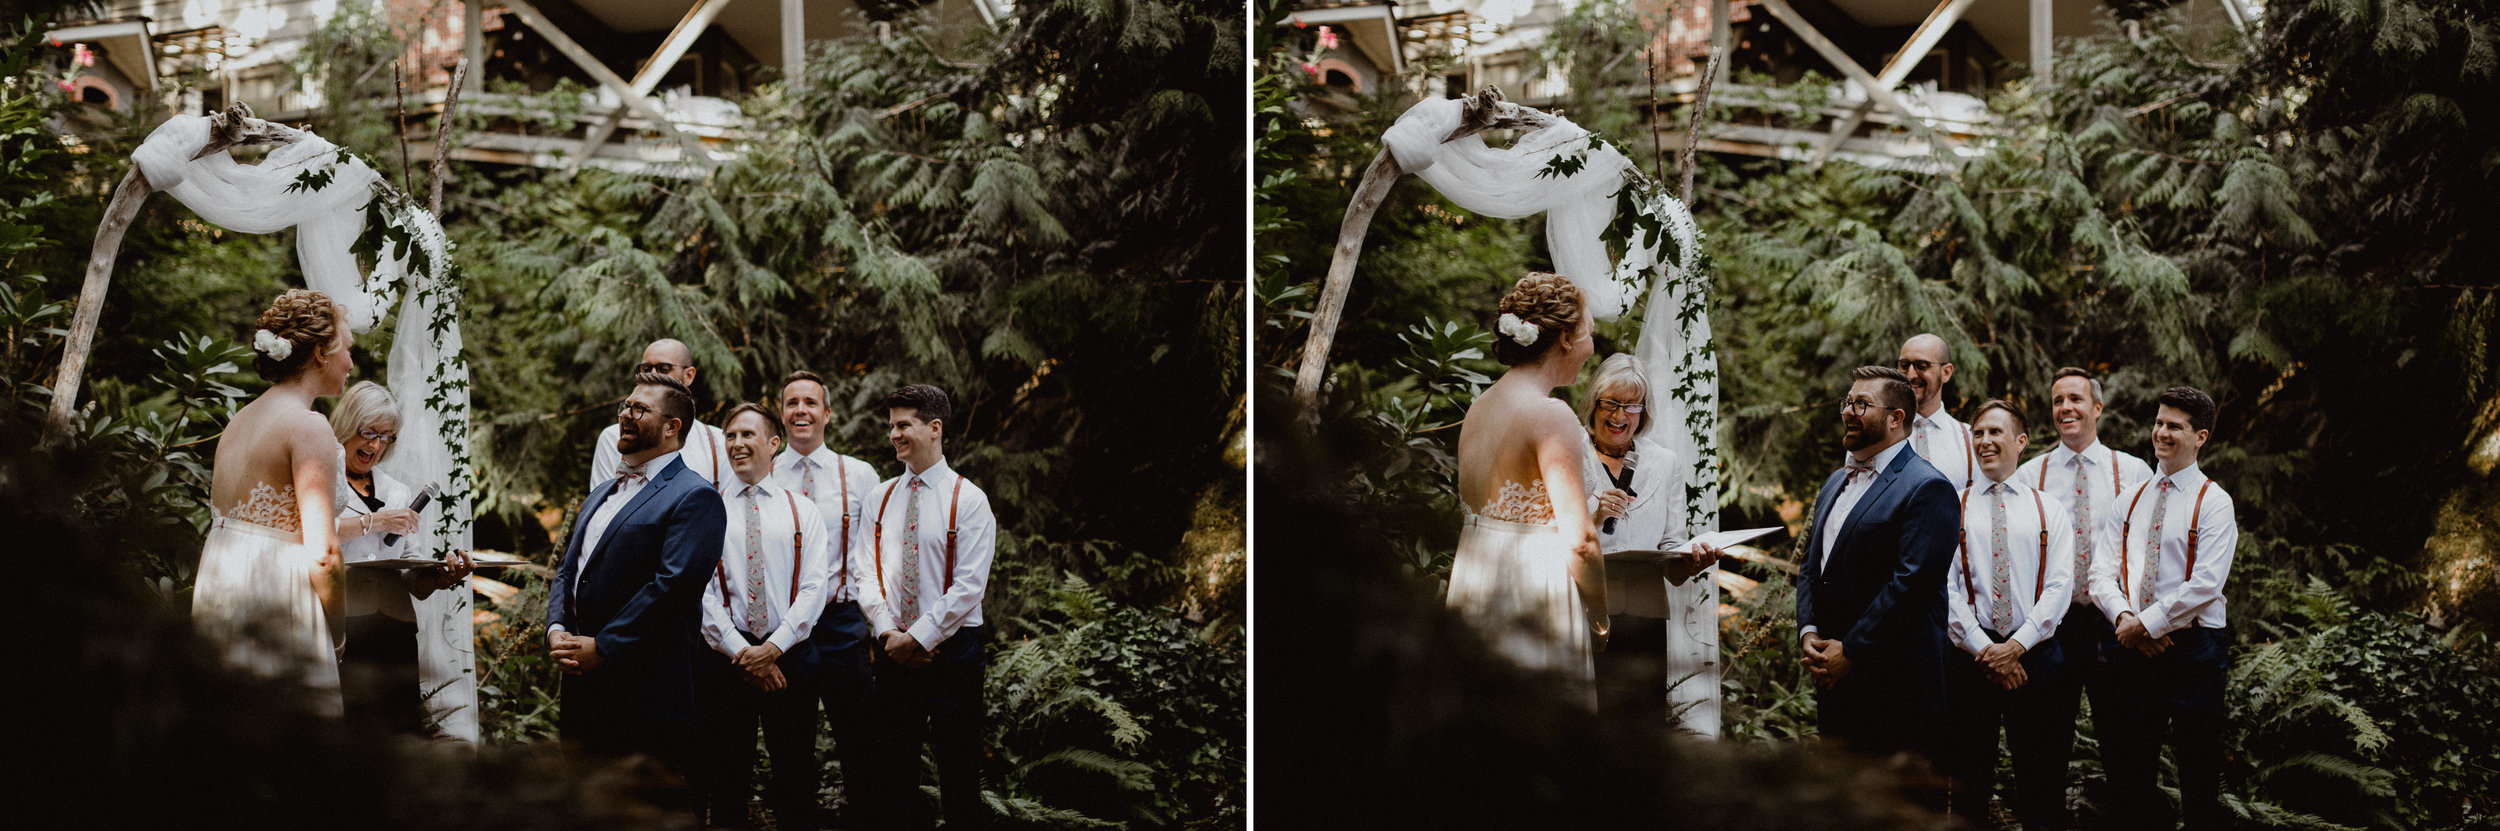 west-vancouver-backyard-wedding-100.jpg